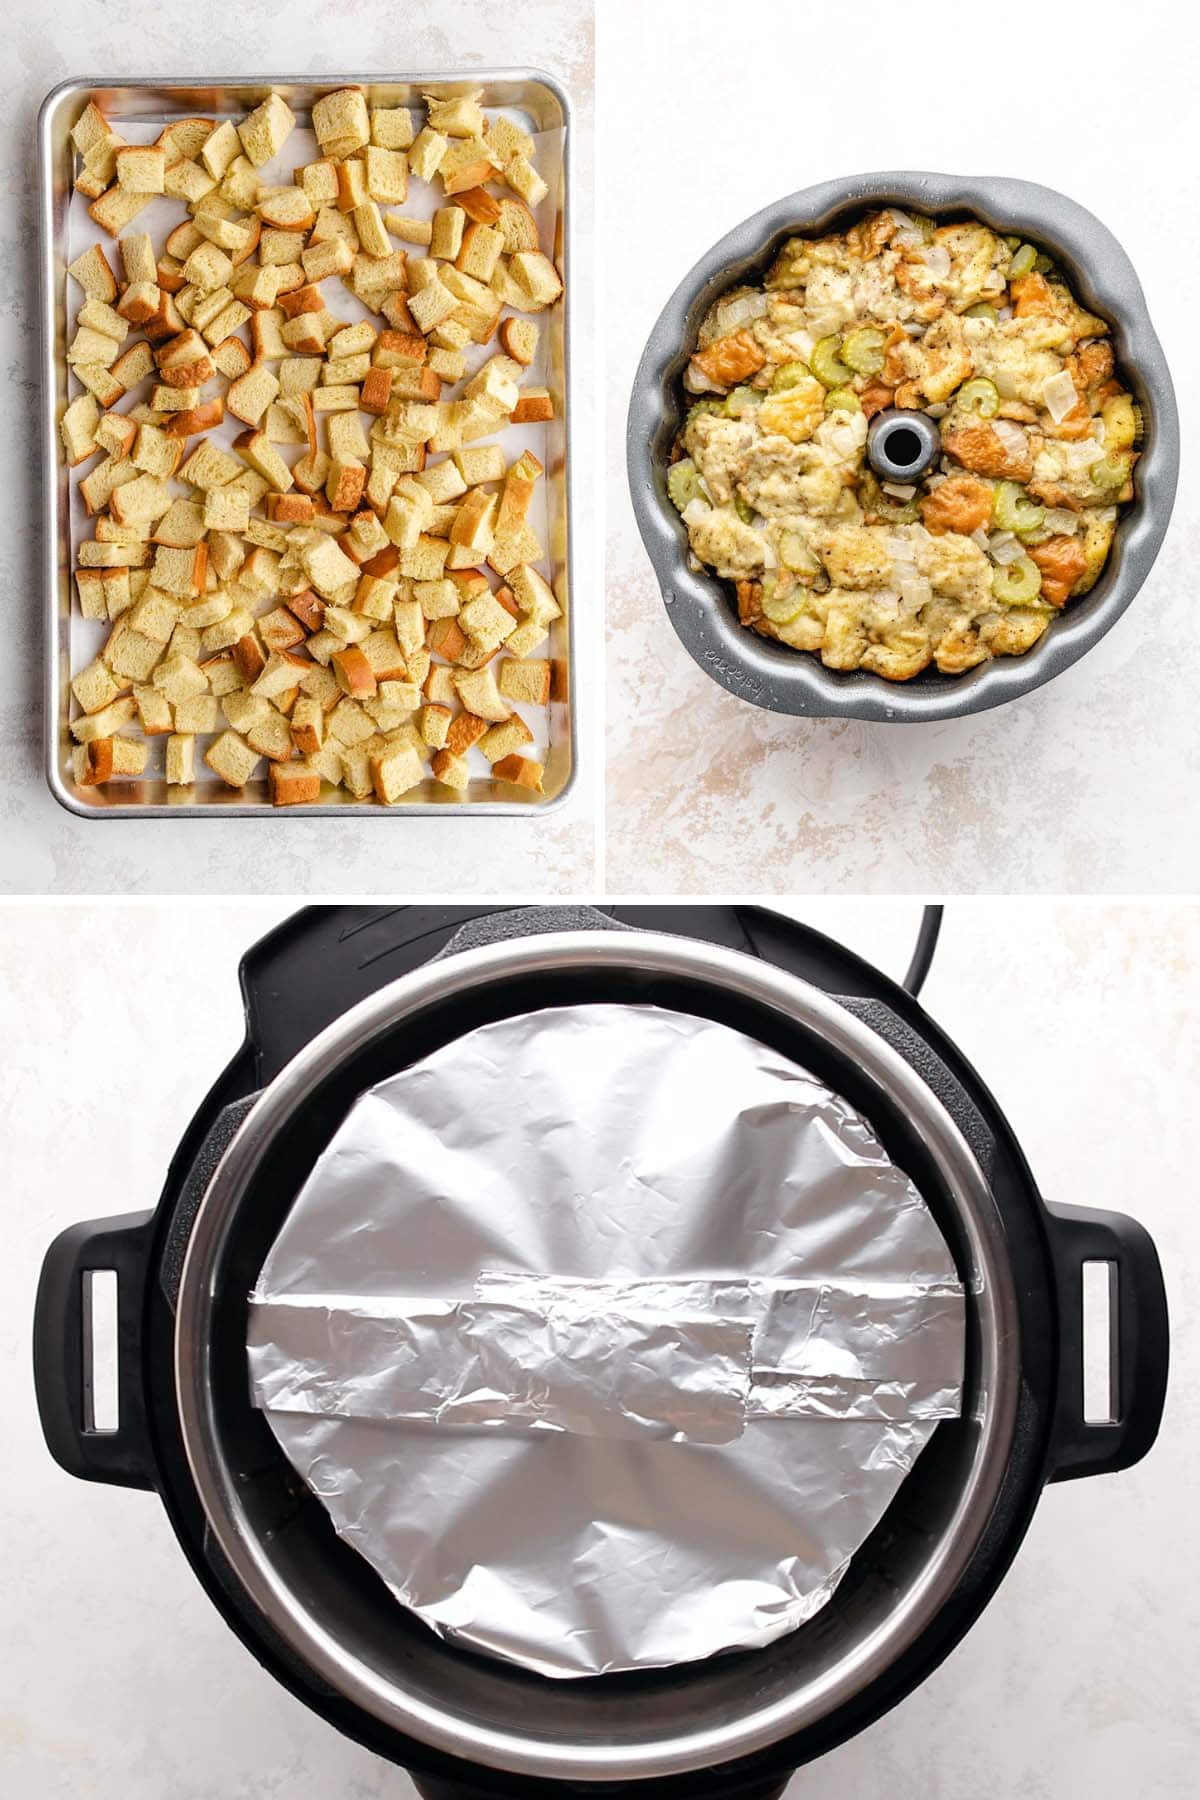 A 3-photo collage showing steps to make Instant Pot Stuffing: toasting the bread, stuffing in a bundt pan and the covered pan with a foil sling in the pressure cooker.